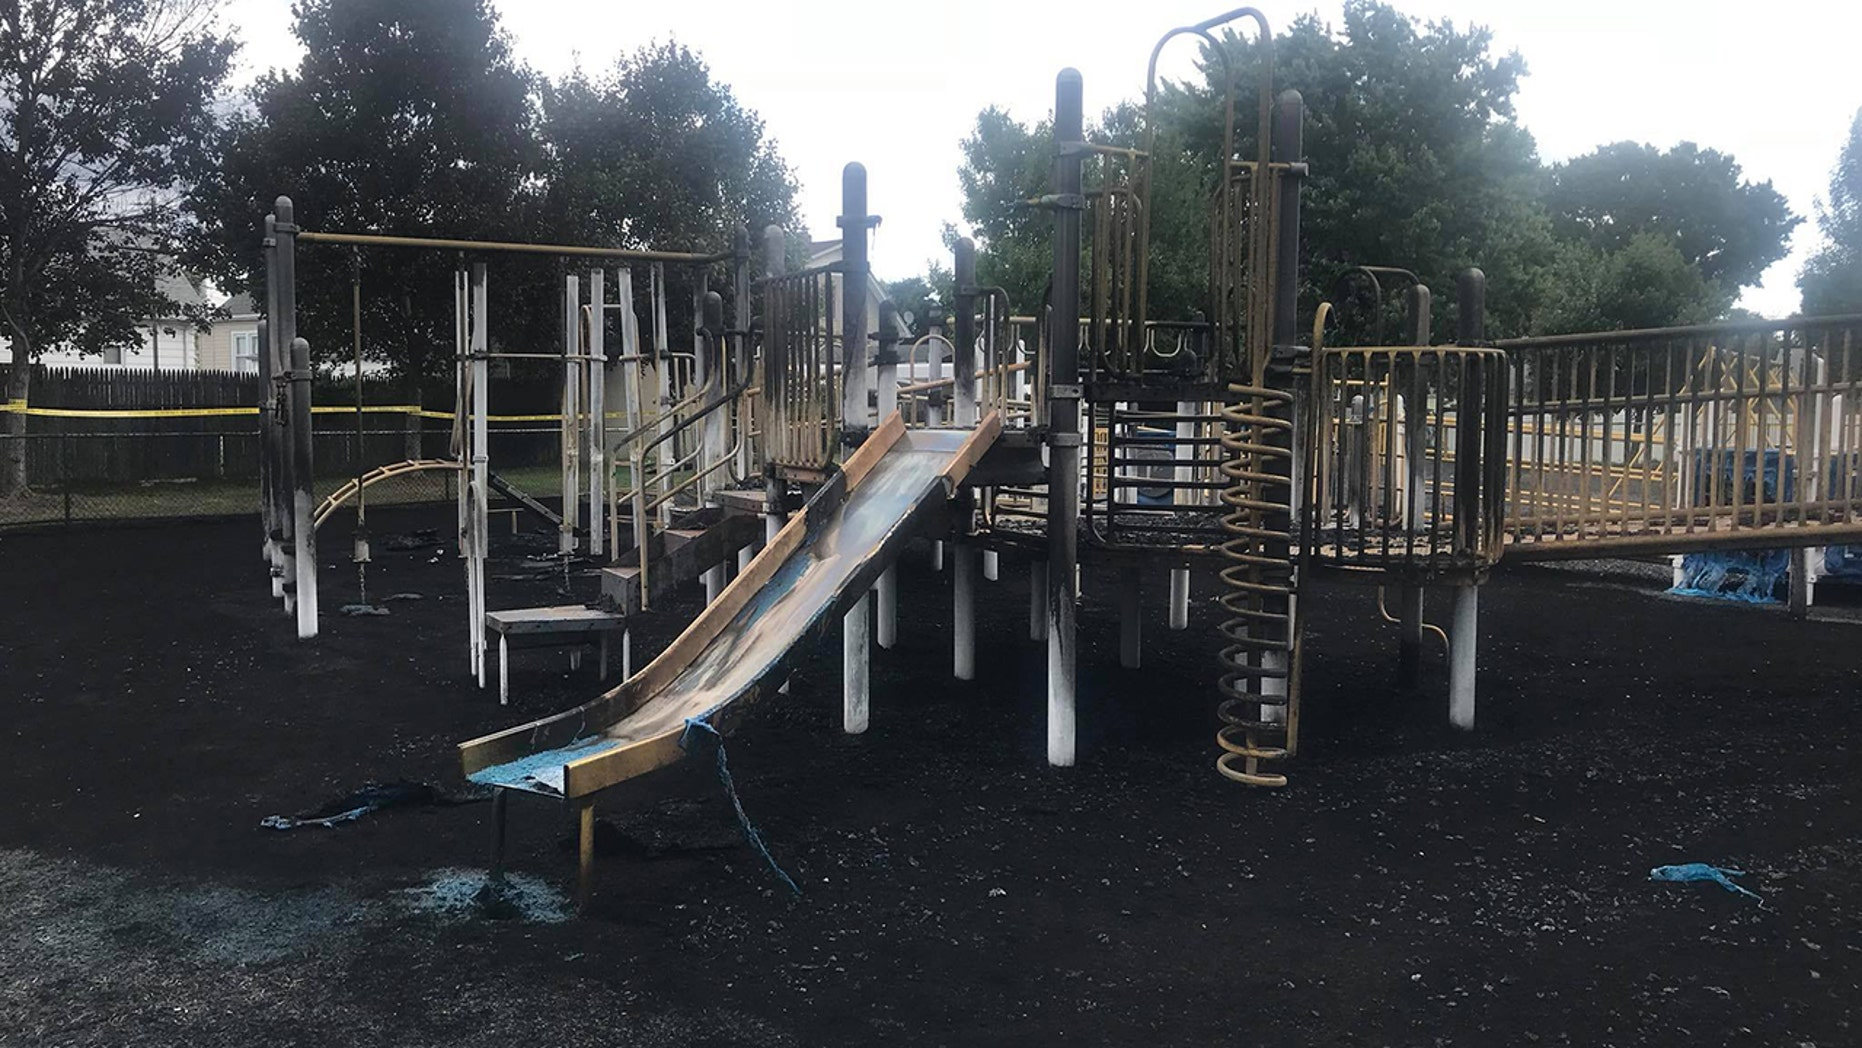 A playground for special needs children was torched.